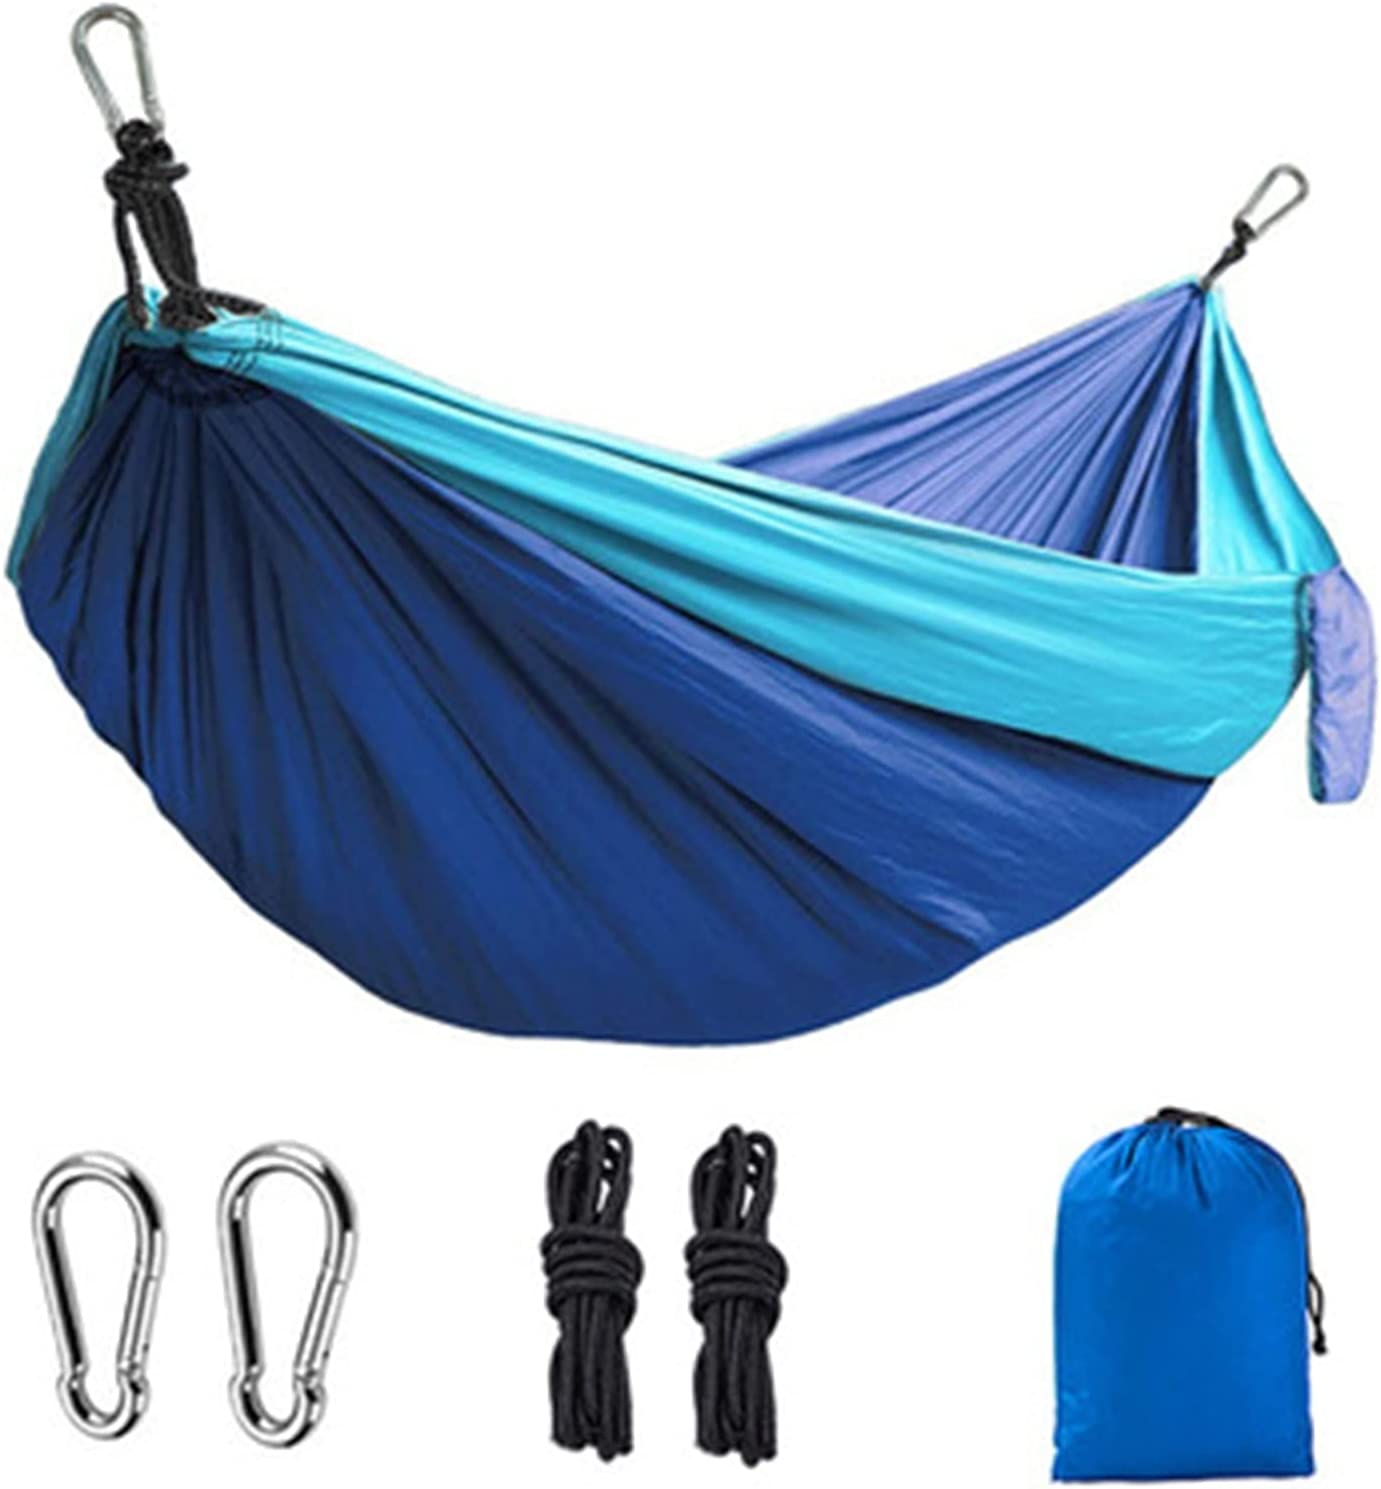 ZWDP Camping Hammock Portable H Parachute Suitable Phoenix Mall Outlet ☆ Free Shipping for